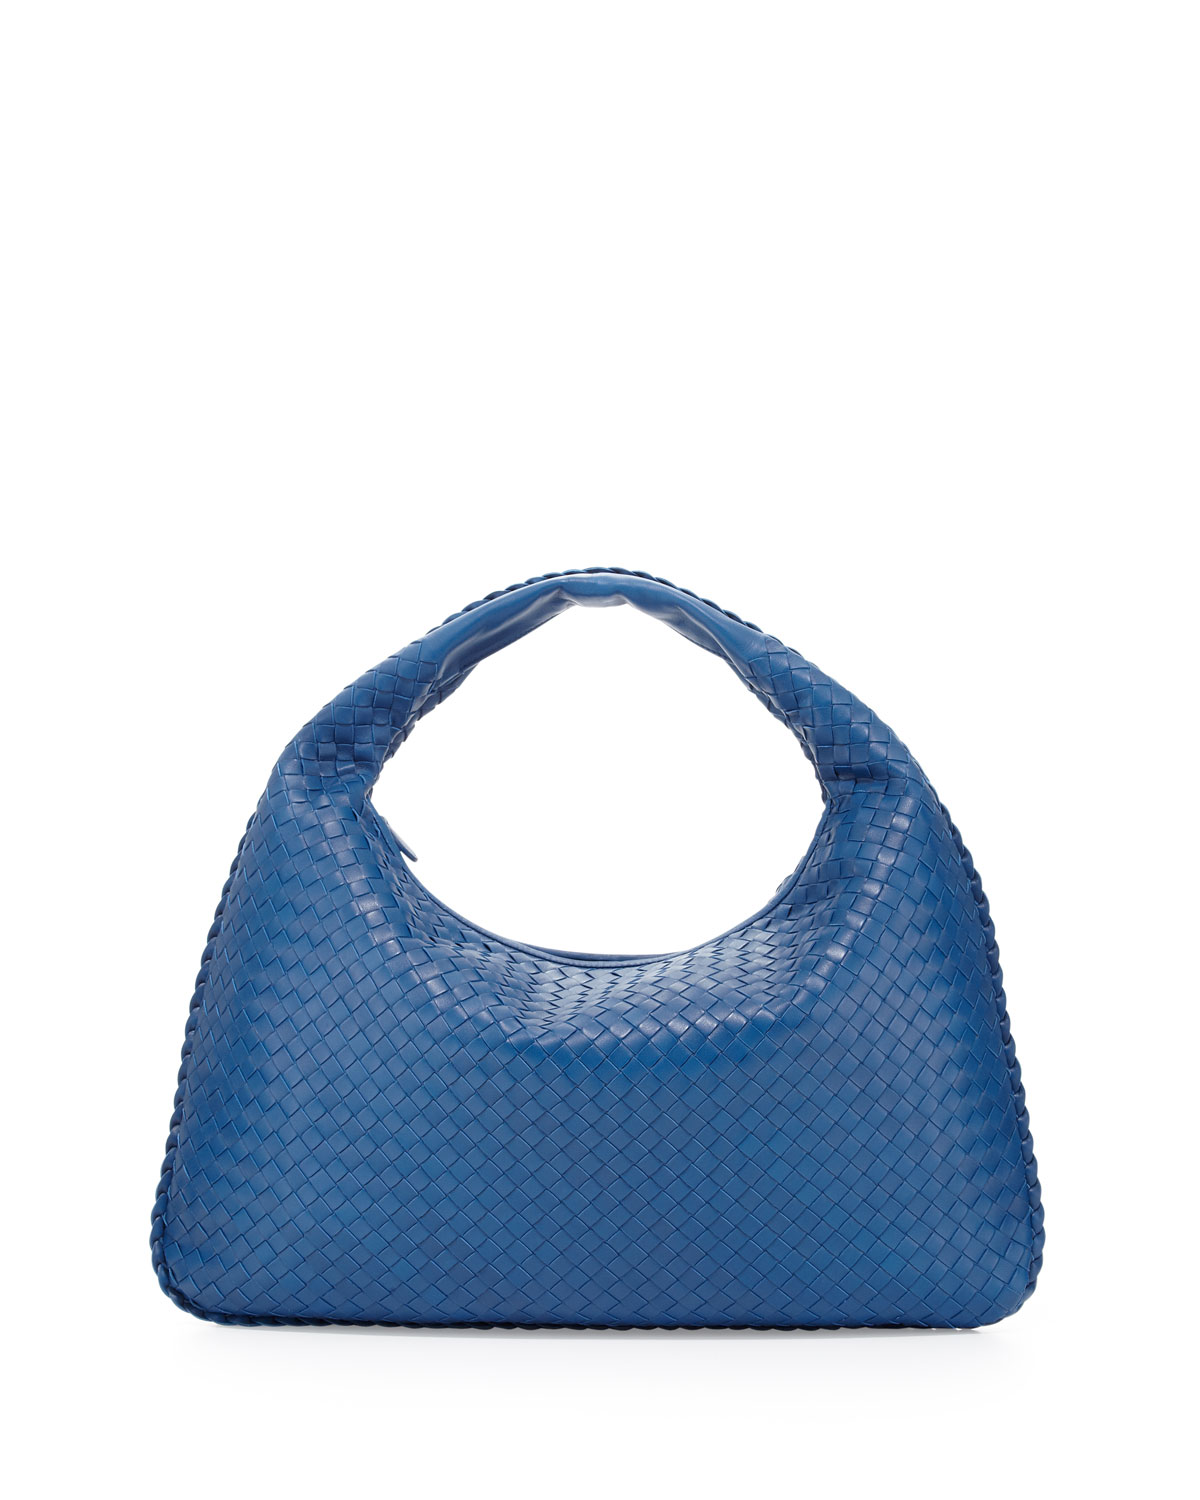 ... Large Lambskin Sac Hobo Bag Royal Blue in Blue (ELEC ROYAL BLUE